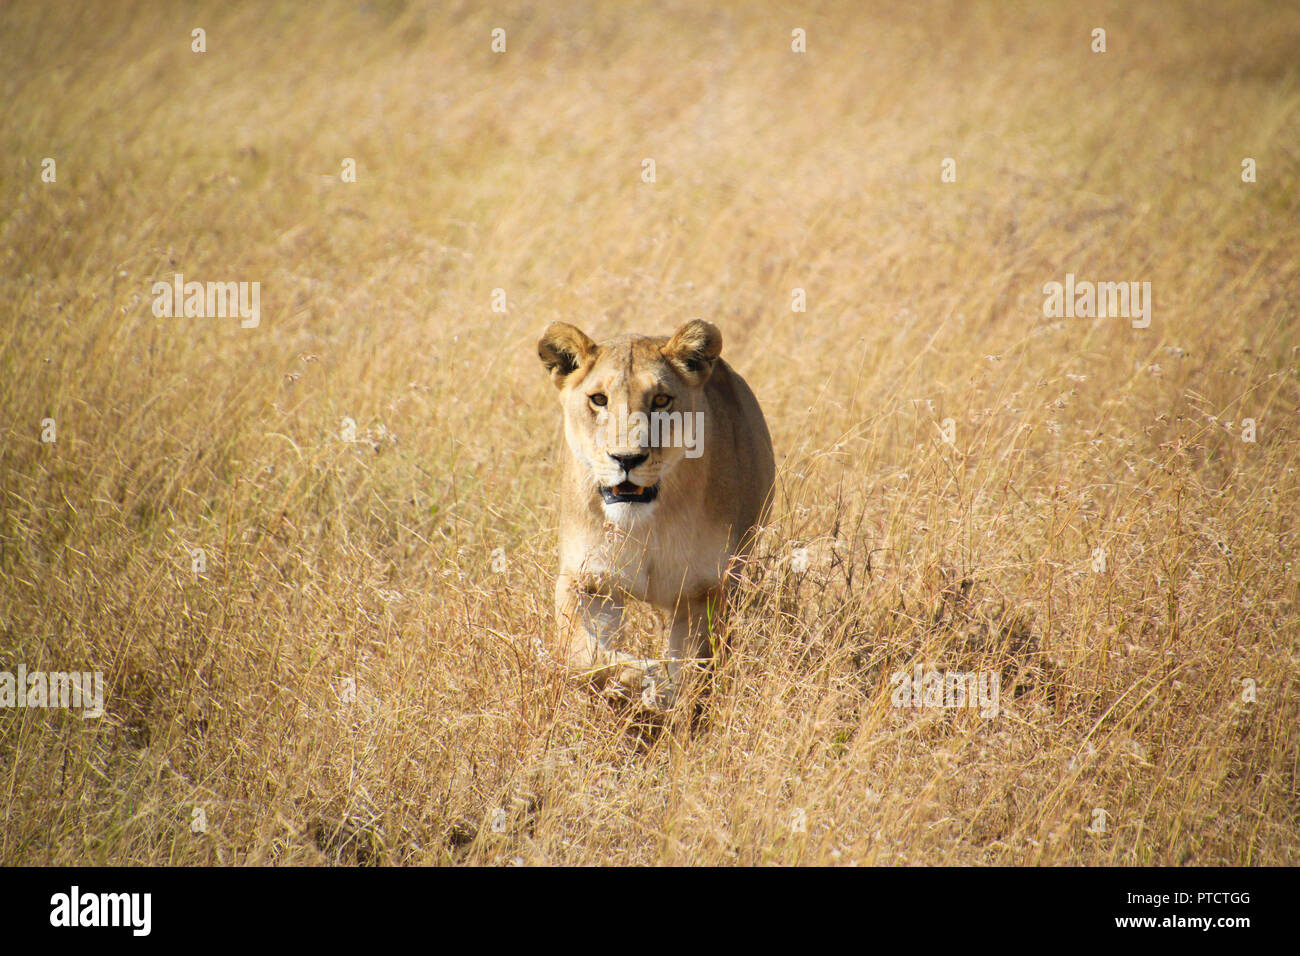 Lioness on the hunt in the endless plains of Serengeti. - Stock Image